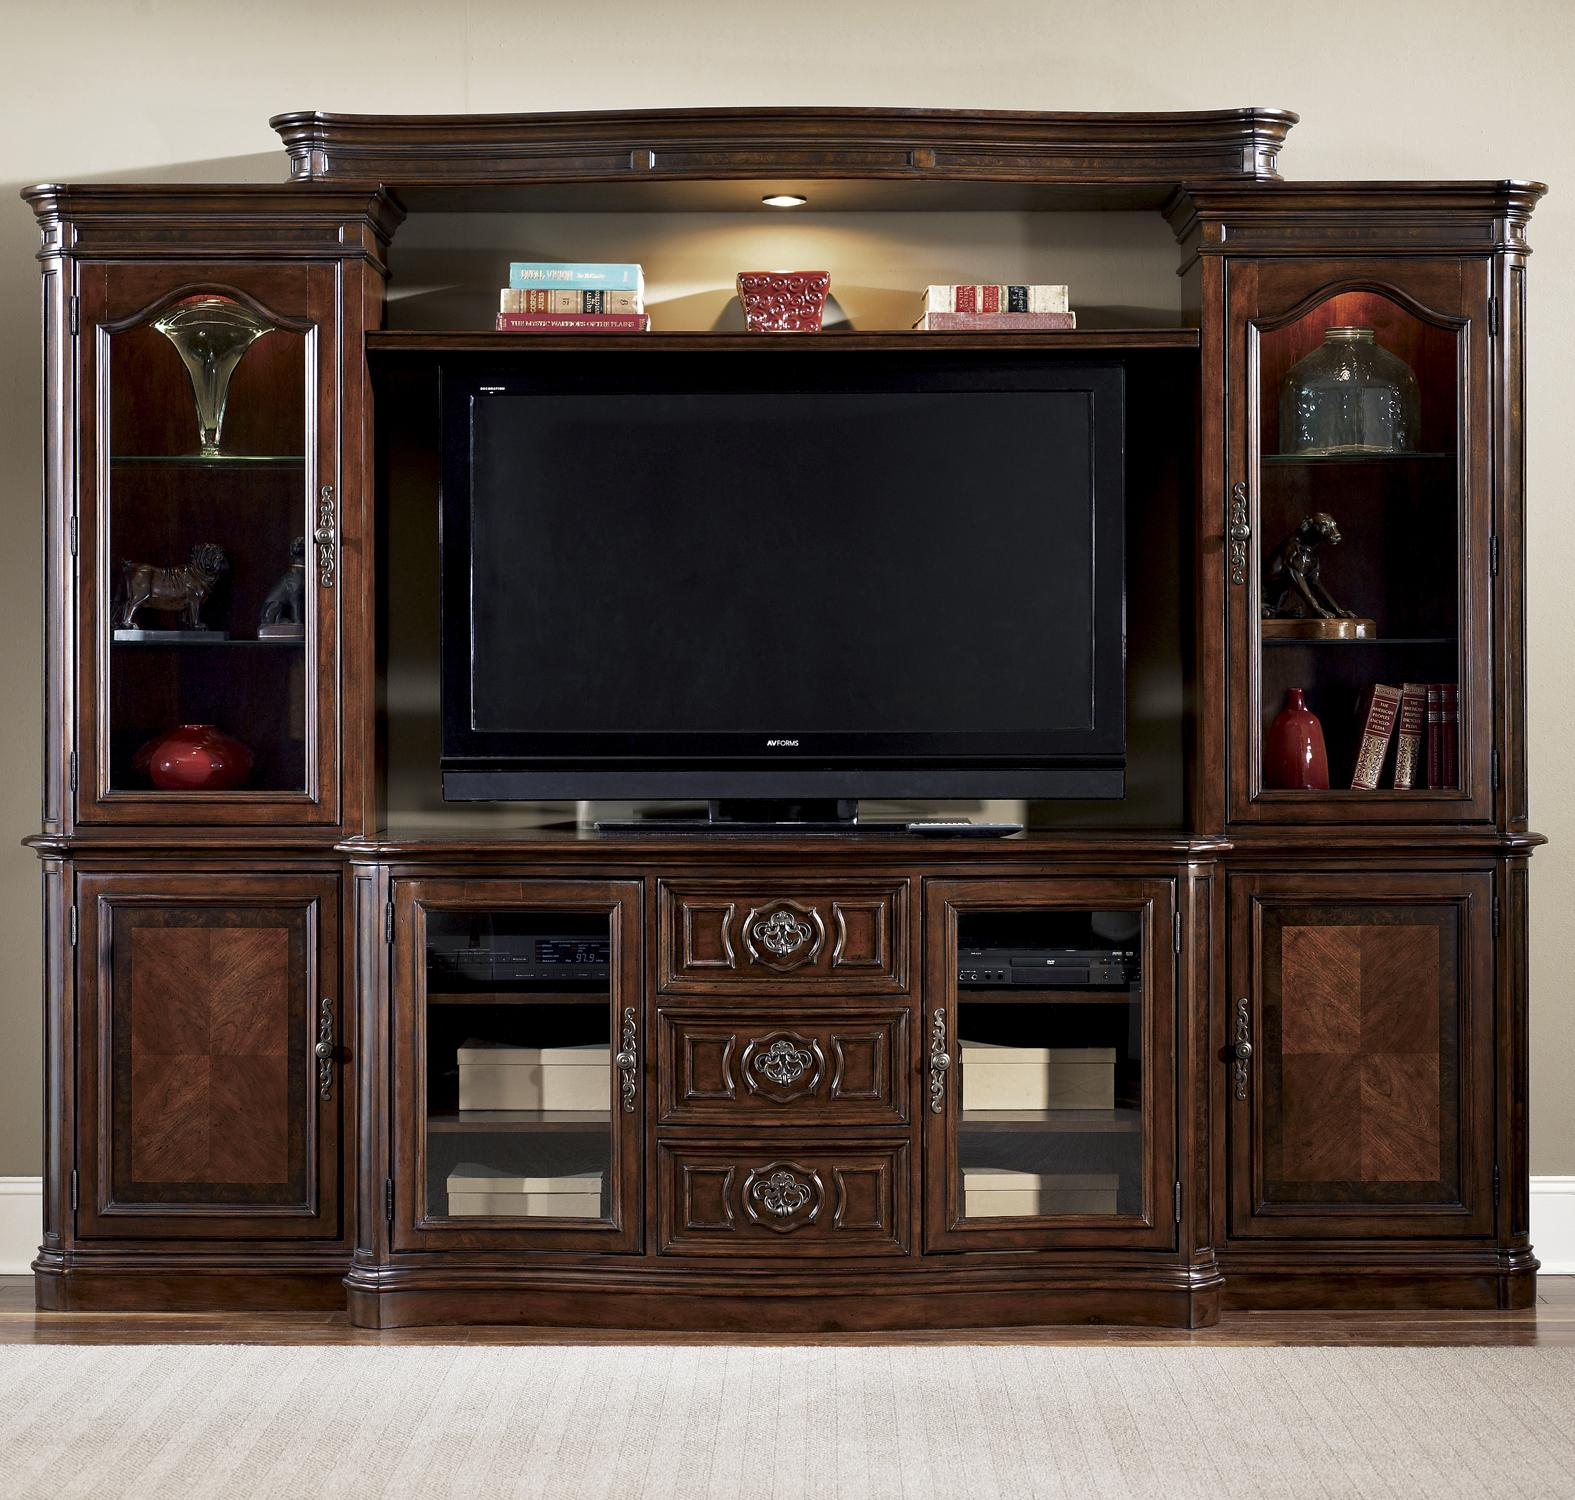 Living Room Furniture Wall Units Collection Amusing Liberty Furniture Andalusia Entertainment Center Wall Unit . Decorating Design